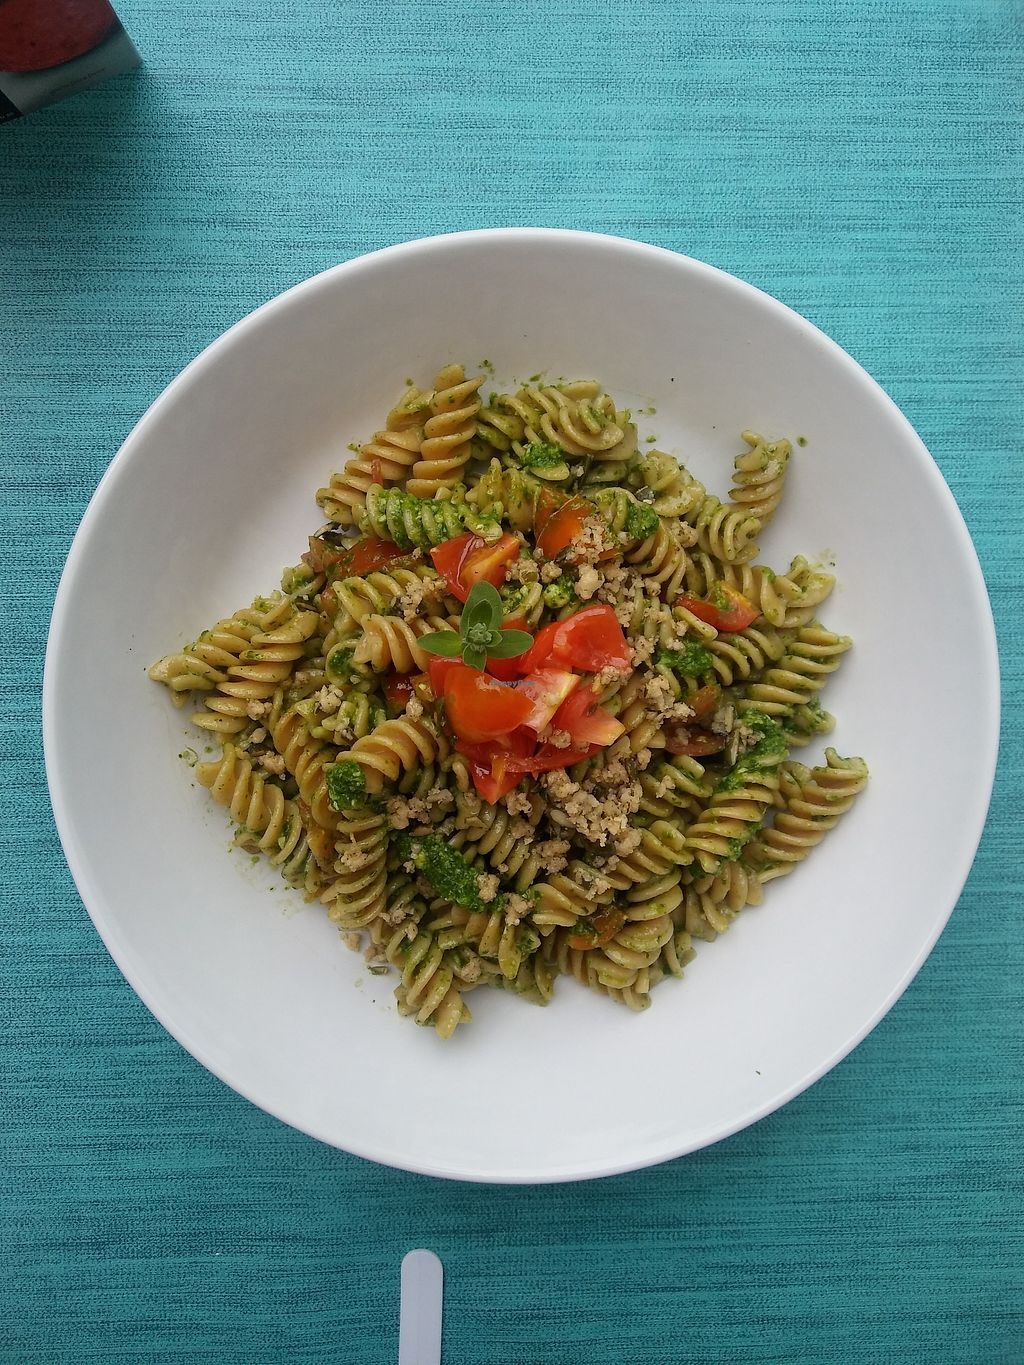 """Photo of Anam Eco- Cafeteria  by <a href=""""/members/profile/jeje"""">jeje</a> <br/>Brown pasta with rocket pesto and fresh tomatoes cherry from Gran Canaria.  <br/> March 24, 2018  - <a href='/contact/abuse/image/114922/375234'>Report</a>"""